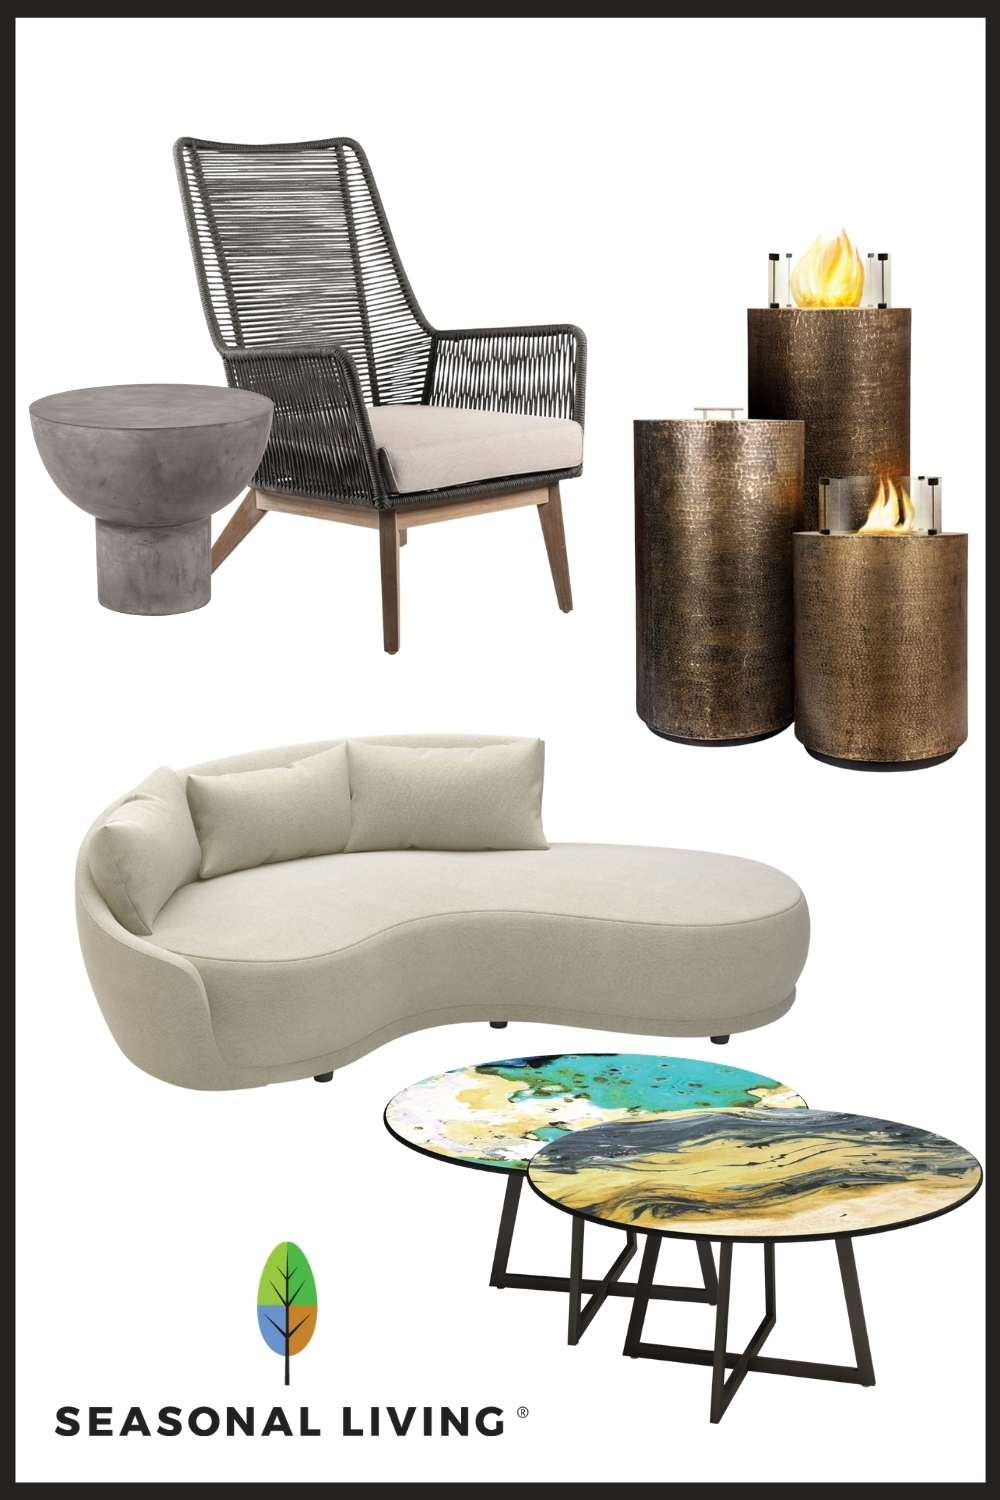 Seasonal Living indoor outdoor furniture material palettes, copper, eucalyptus wood, lightweight concrete, volcanic stone